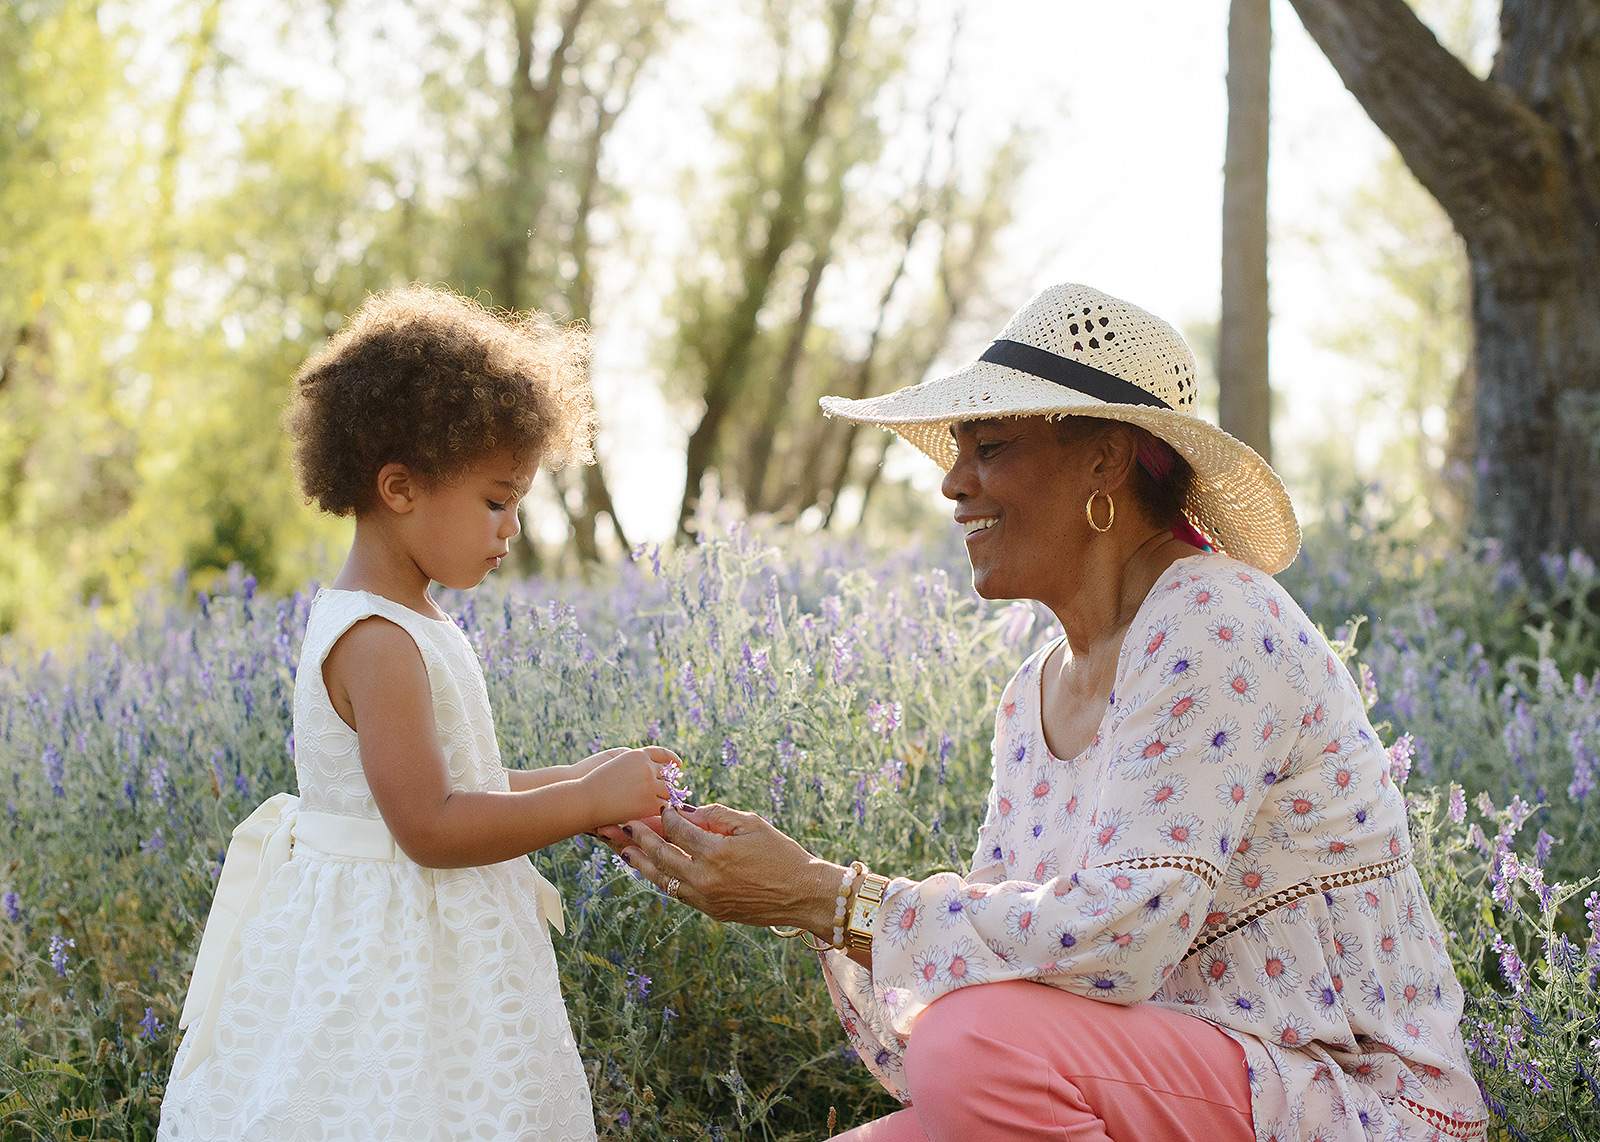 granddaughter and grandmother picking wildflowers